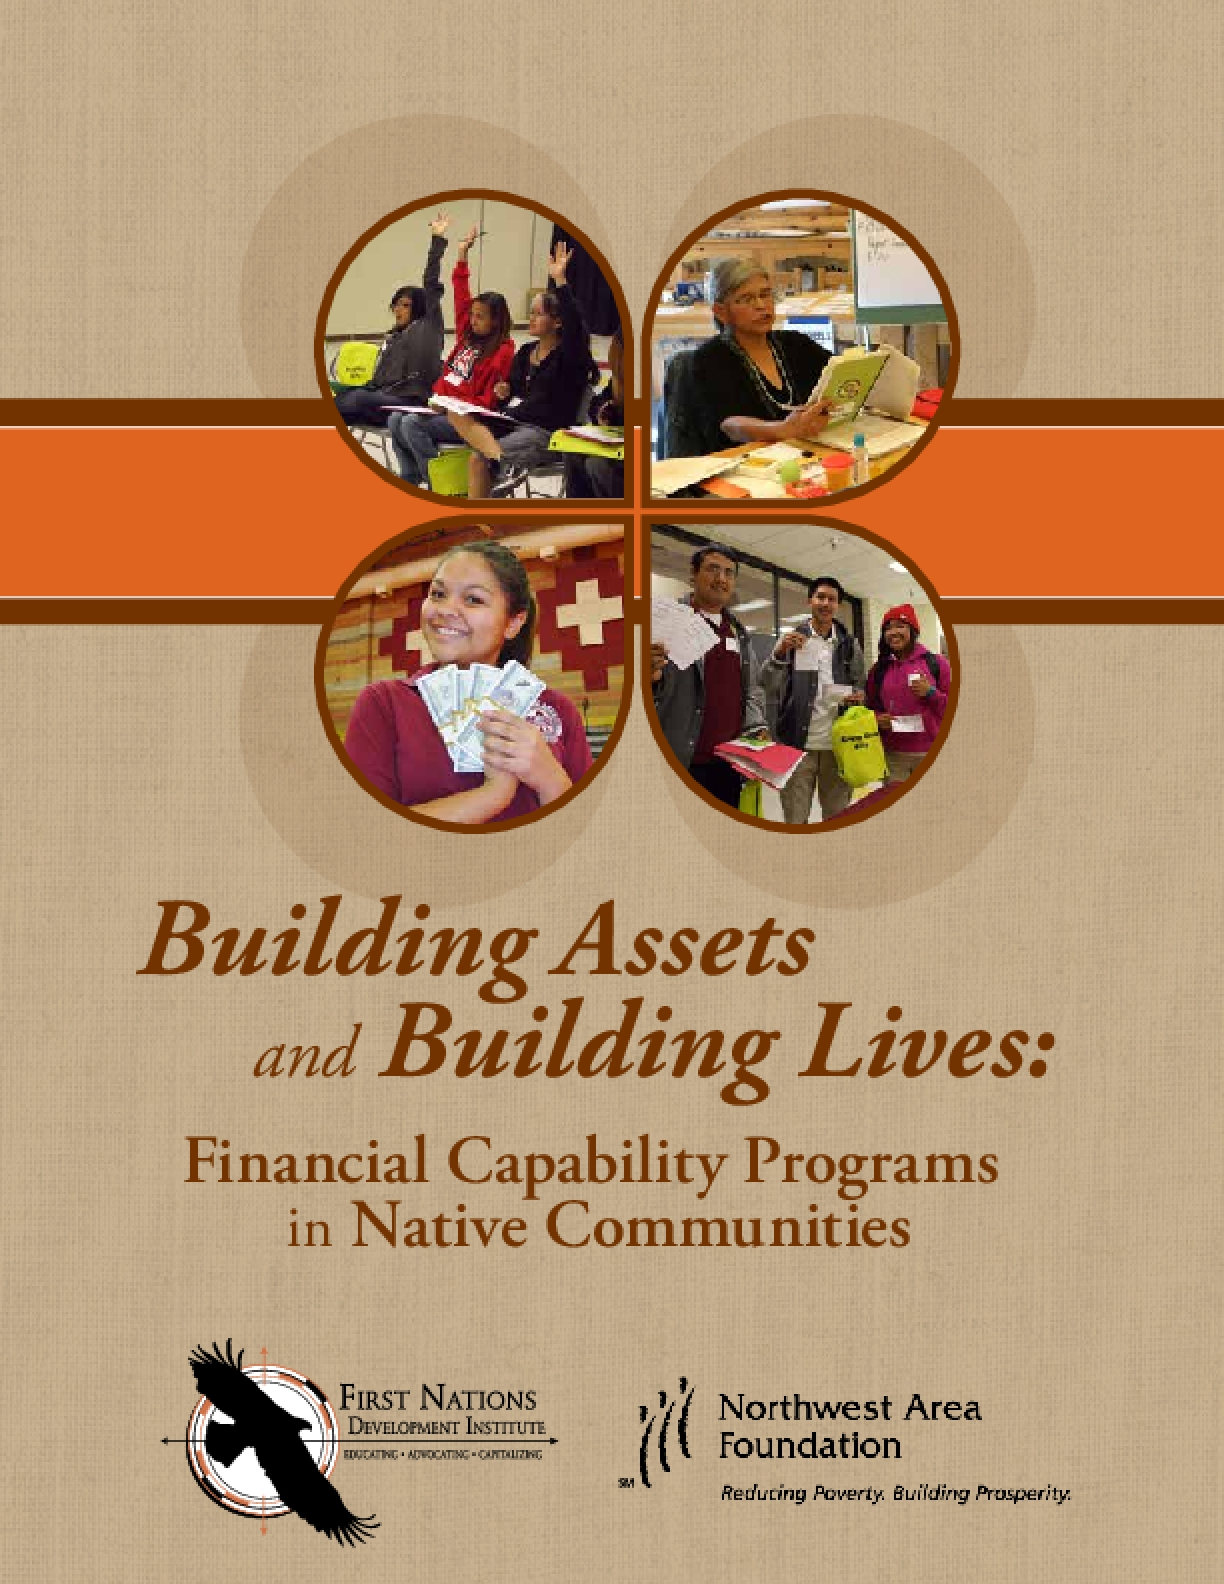 Building Assets and Building Lives: Financial Capability Programs in Native Communities